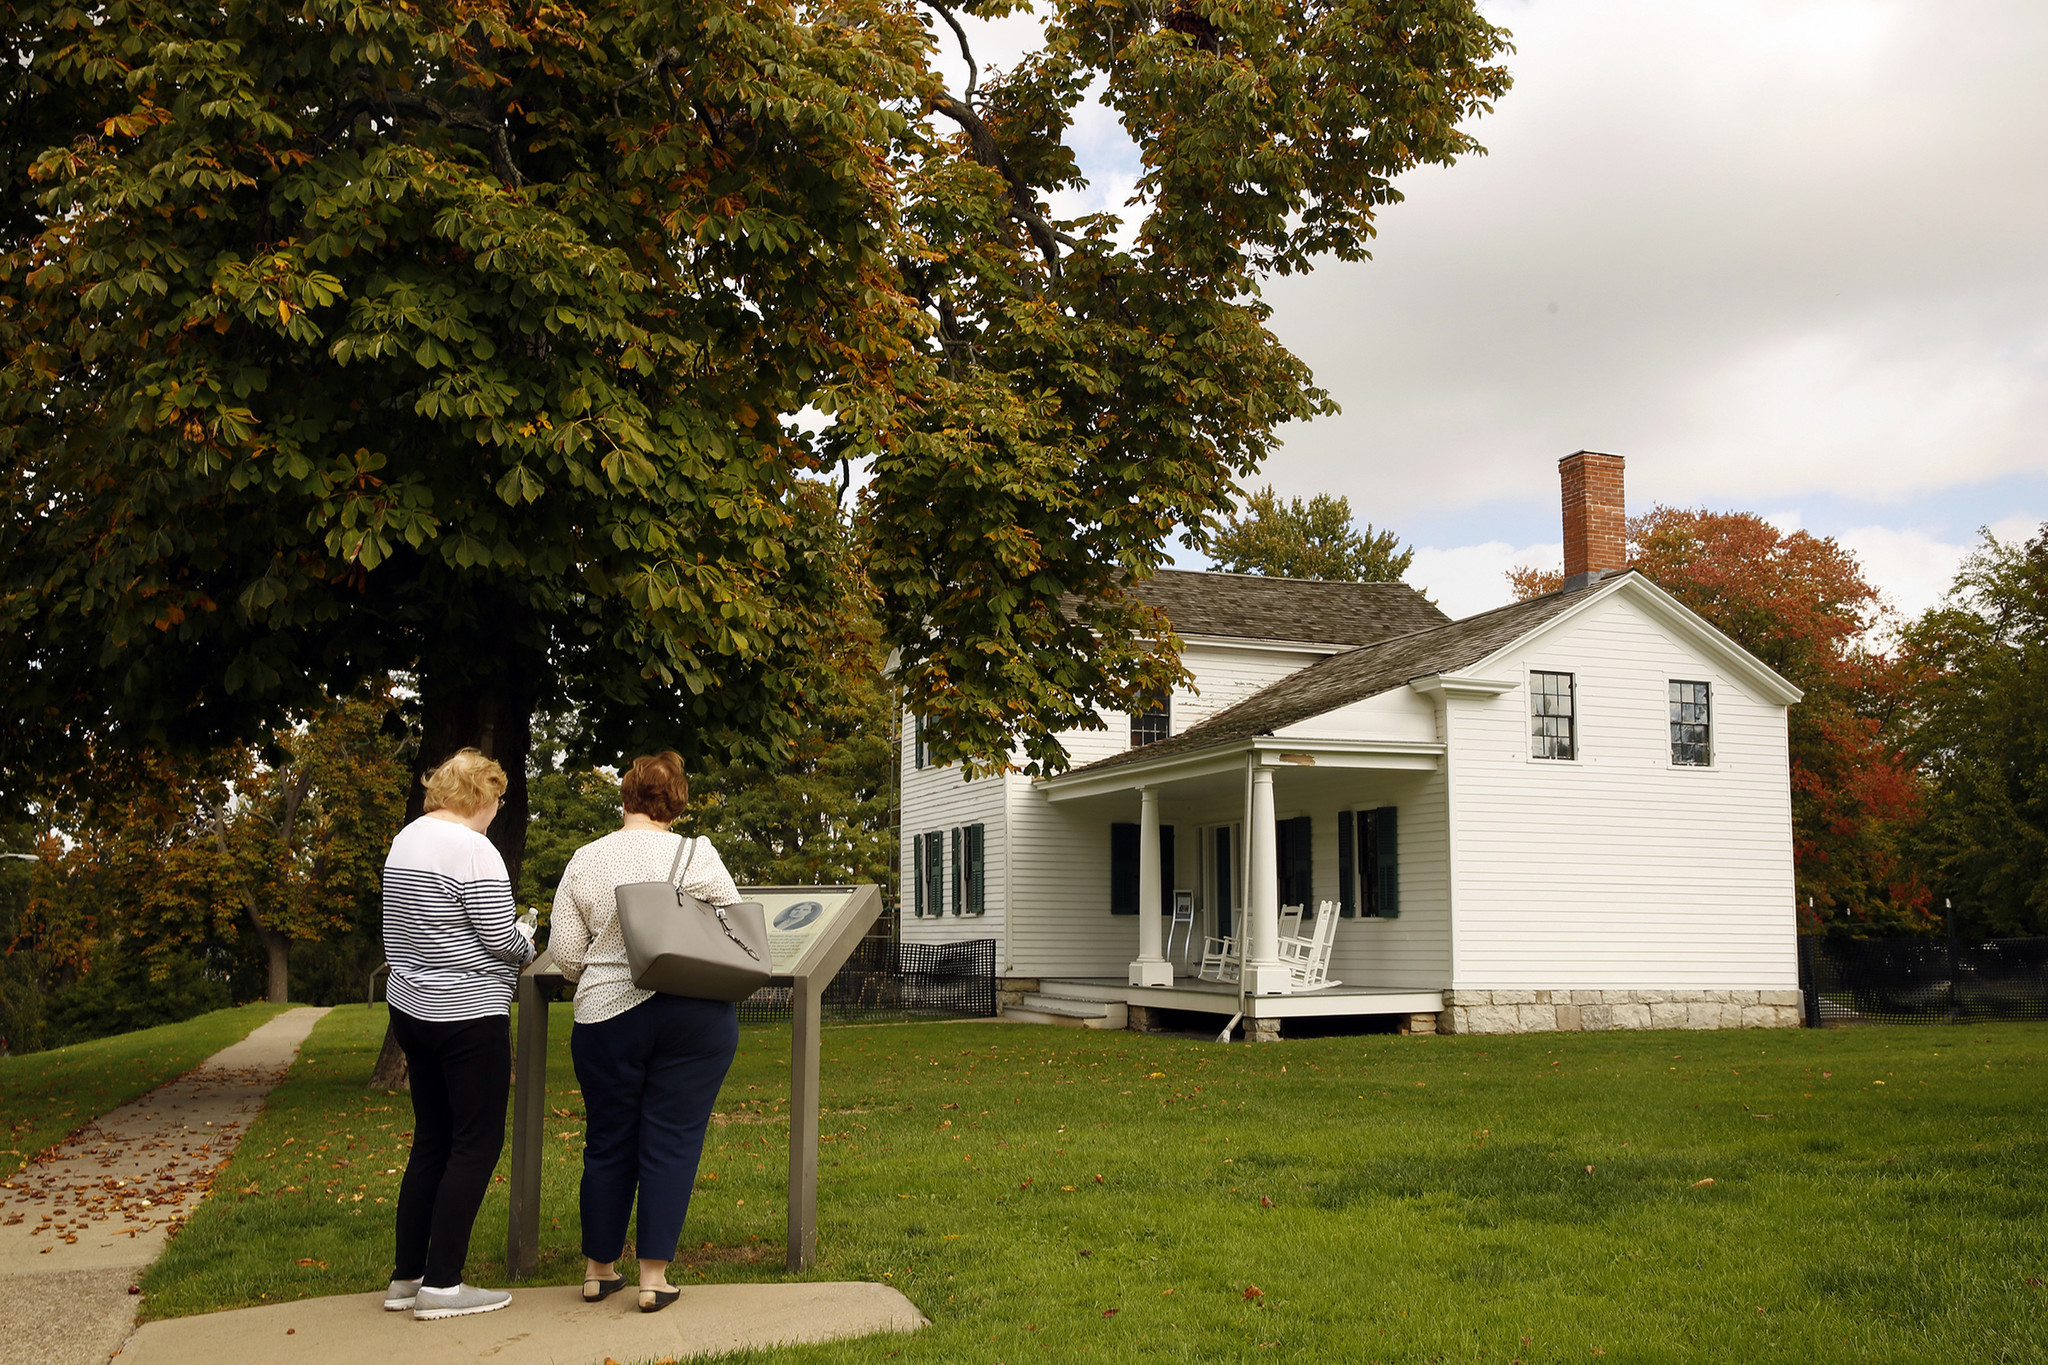 Visitors read about the Elizabeth Cady Stanton Home.